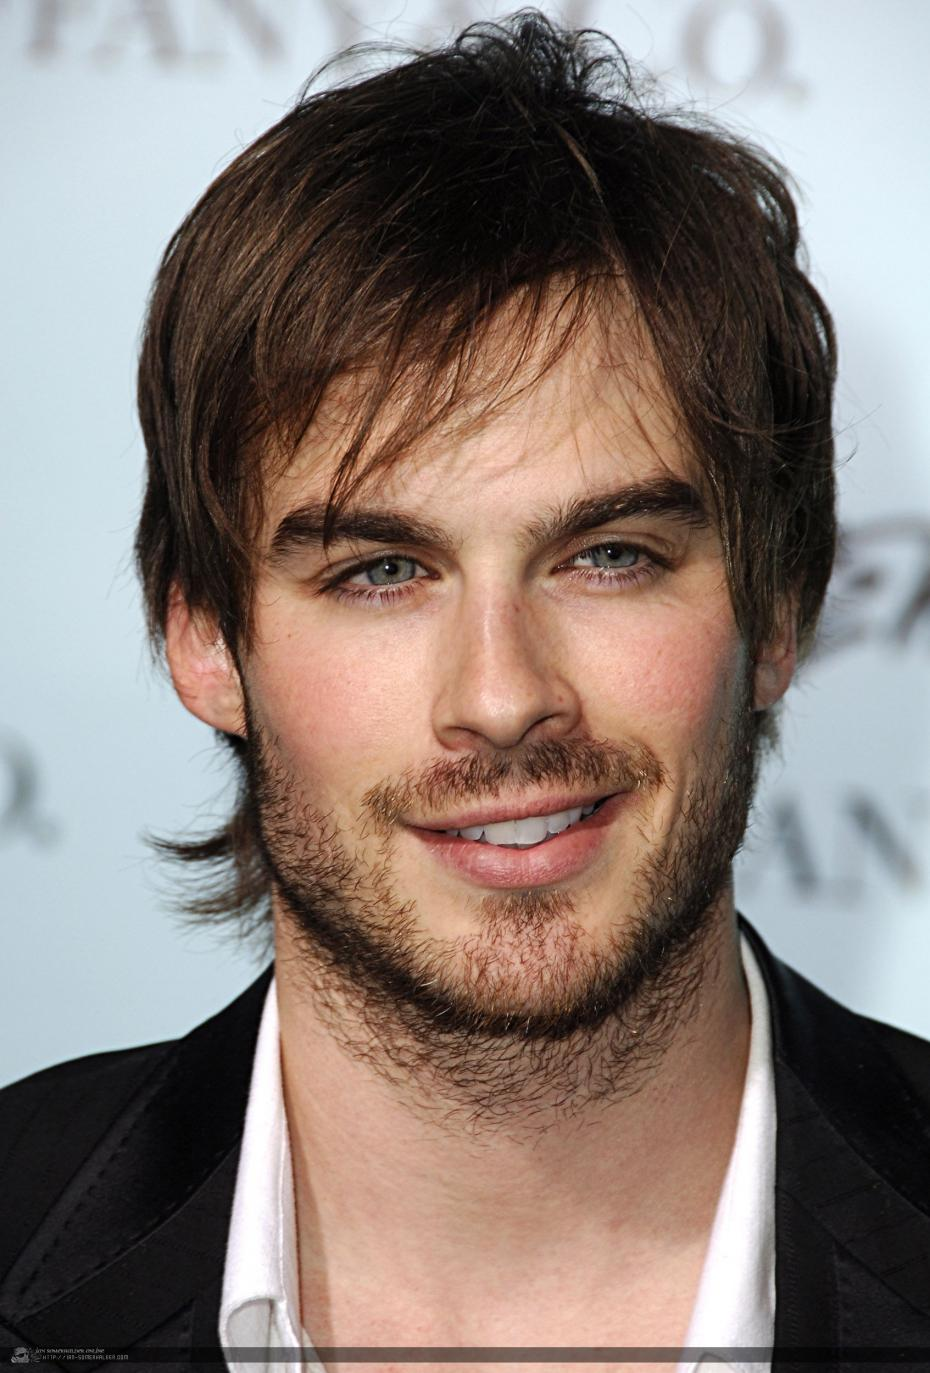 Actor Ian Somerhalder - age: 38